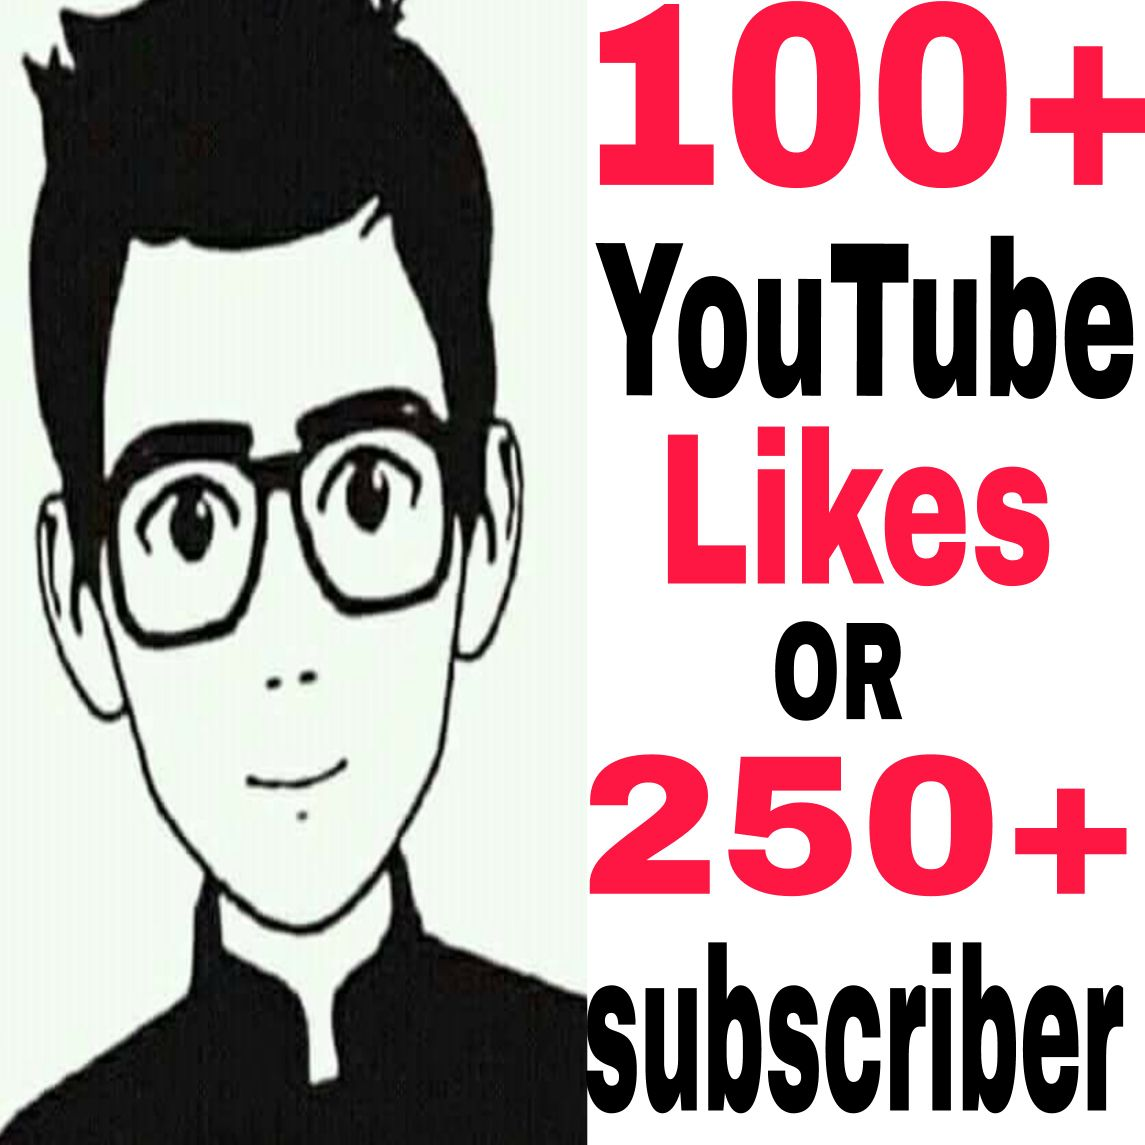 Manually non drop 100+ video L-ikes OR 250+ manually non drop Sub-Scriber very fast in 2-3 hours